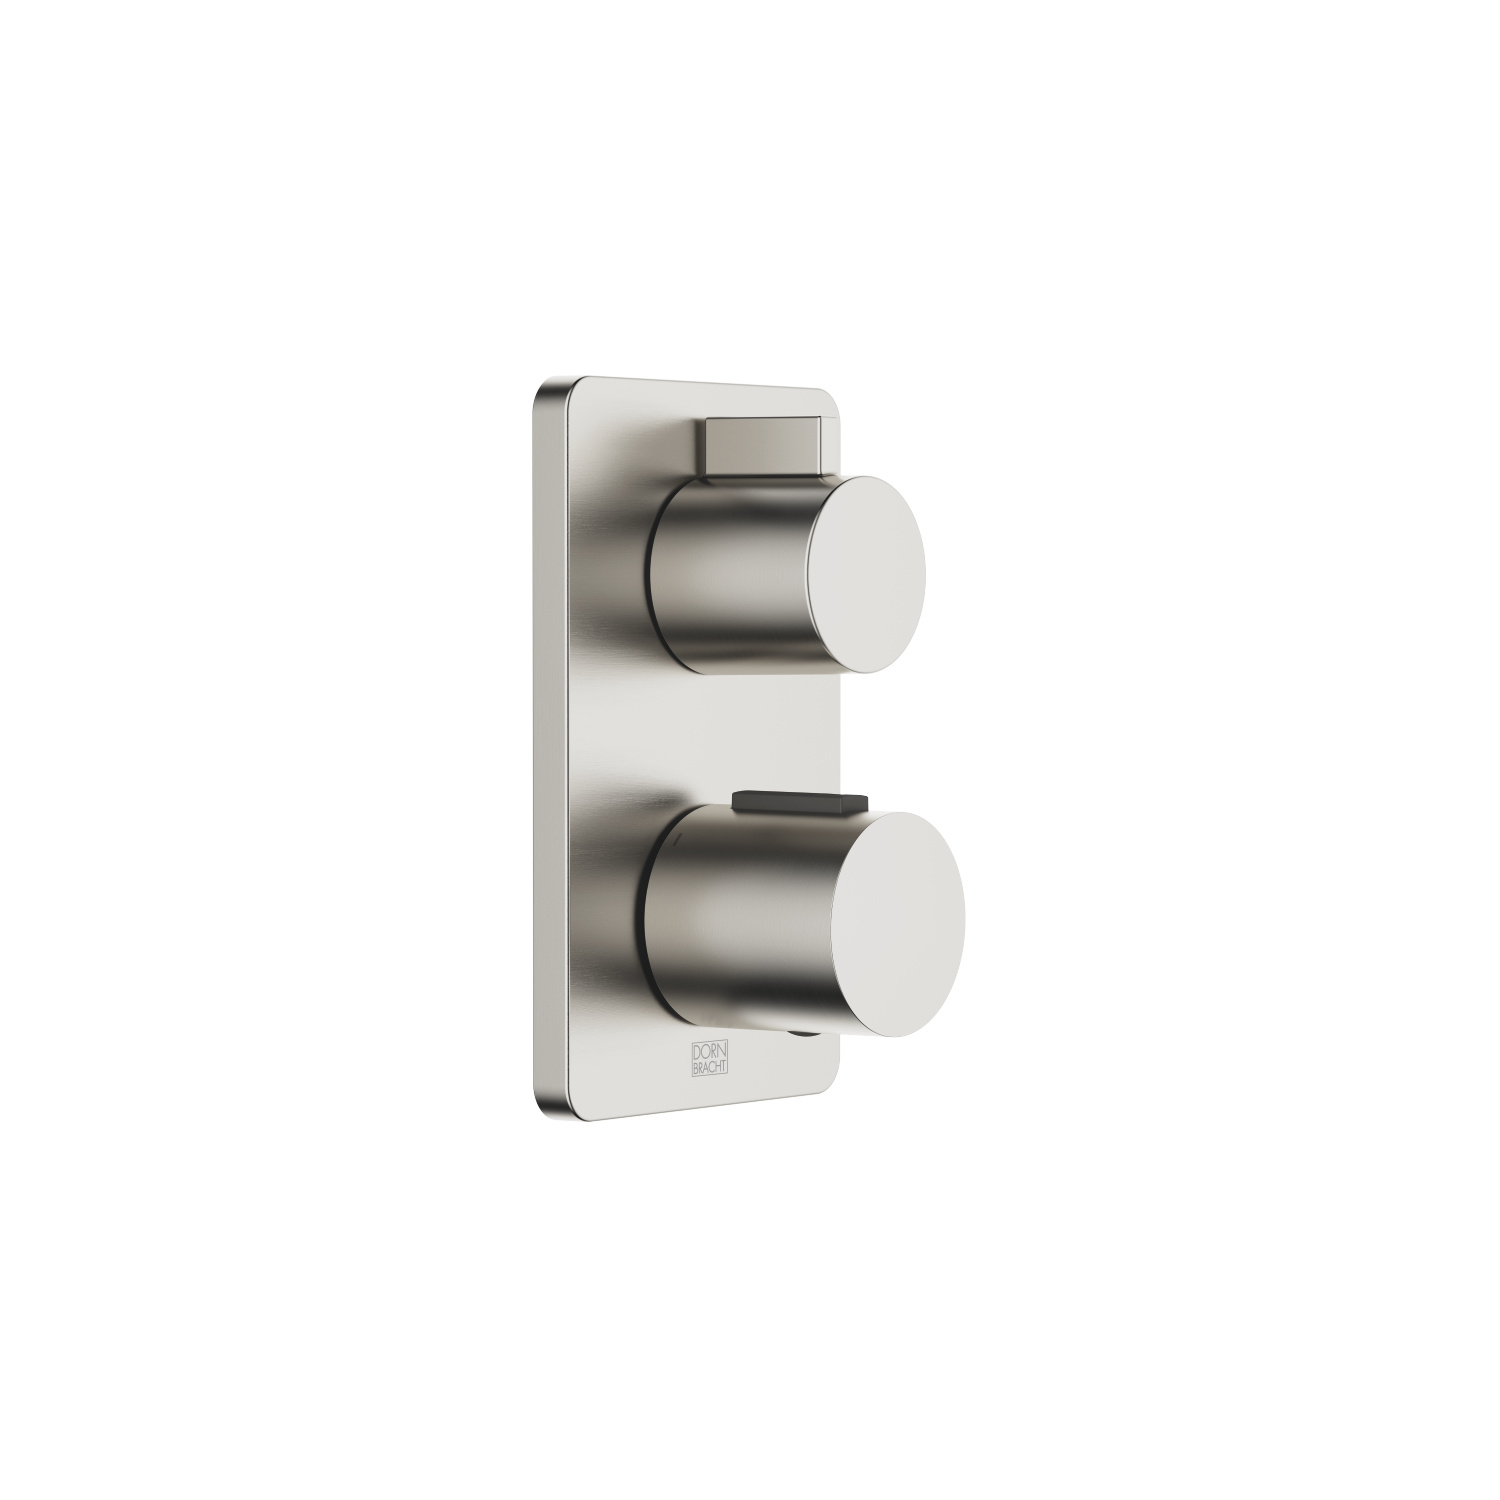 Concealed thermostat with three function volume control - platinum matt